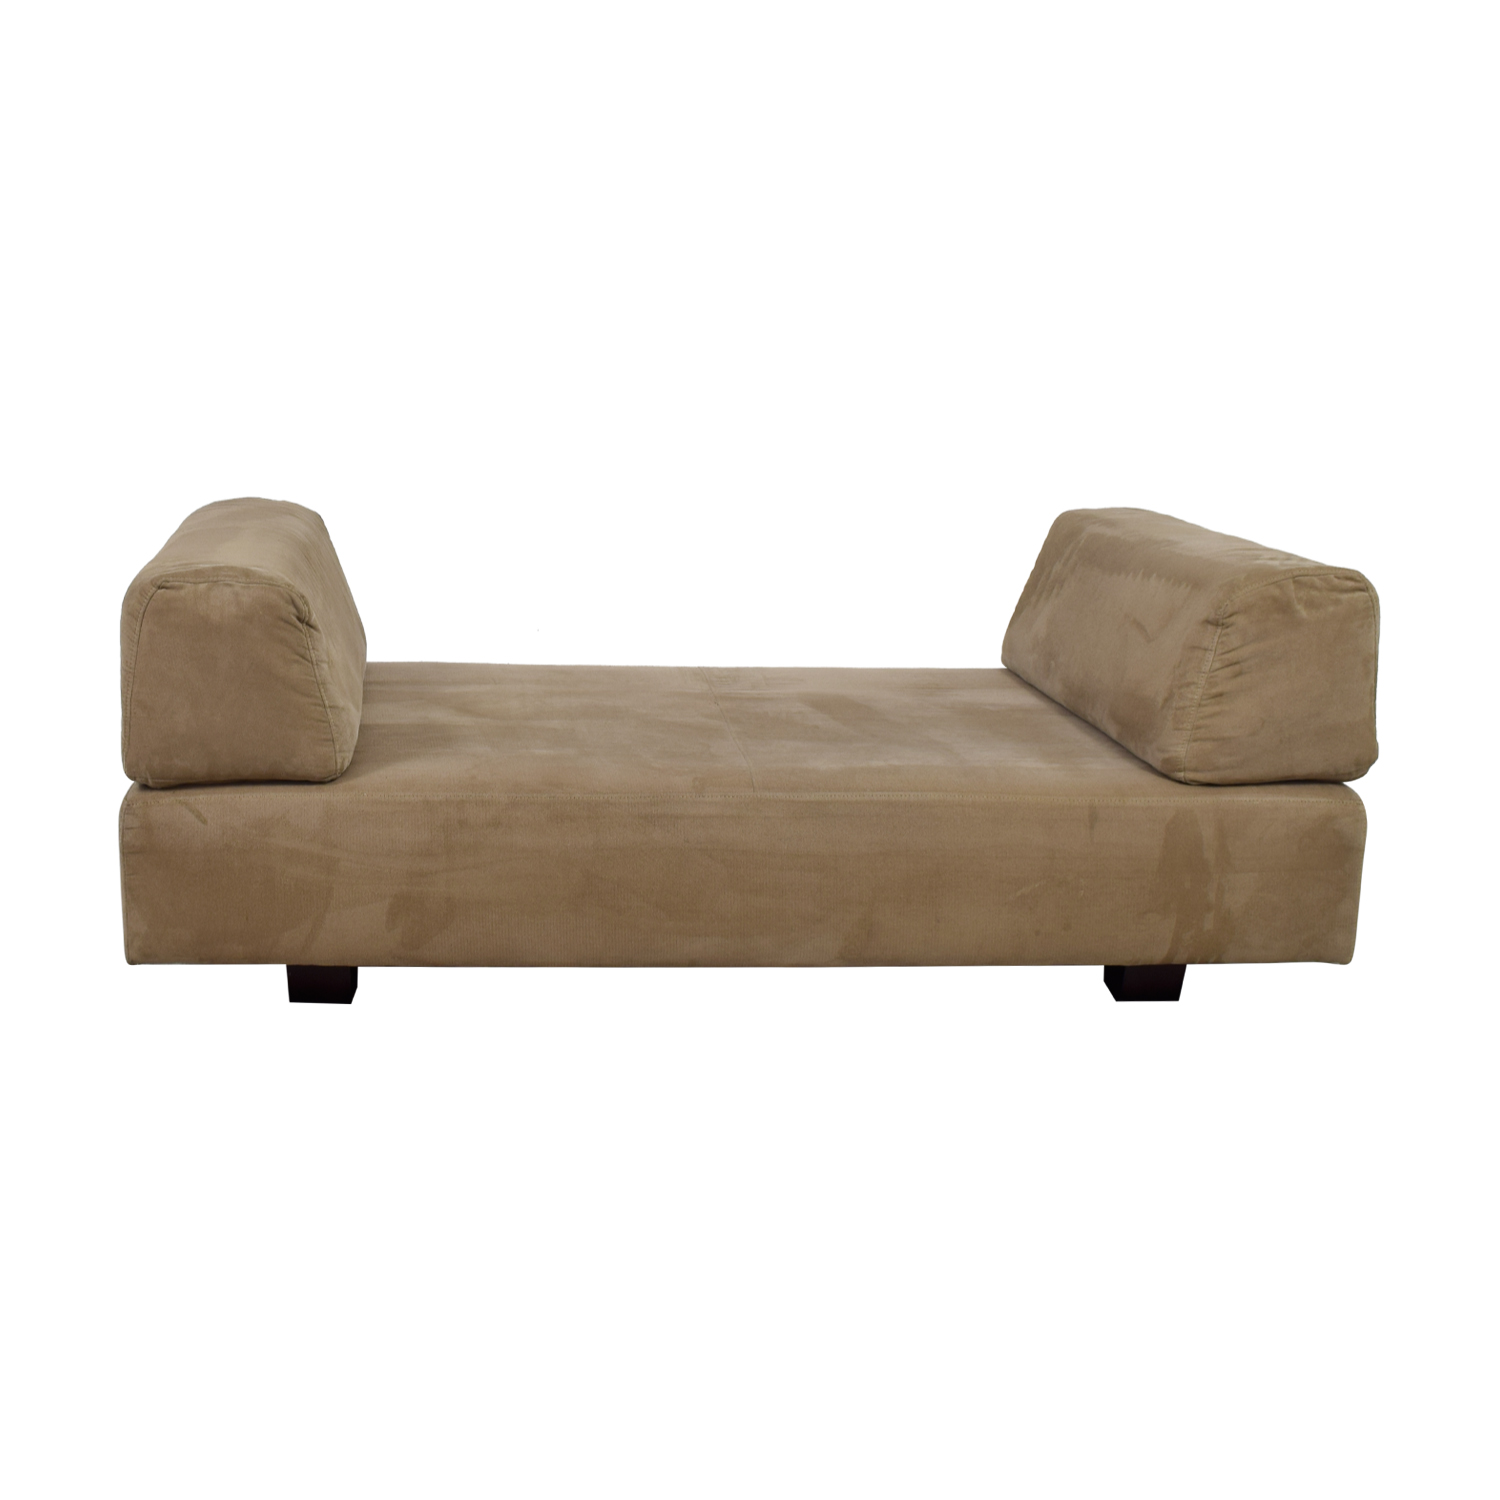 West Elm West Elm Tan Interchangable Sofa dimensions